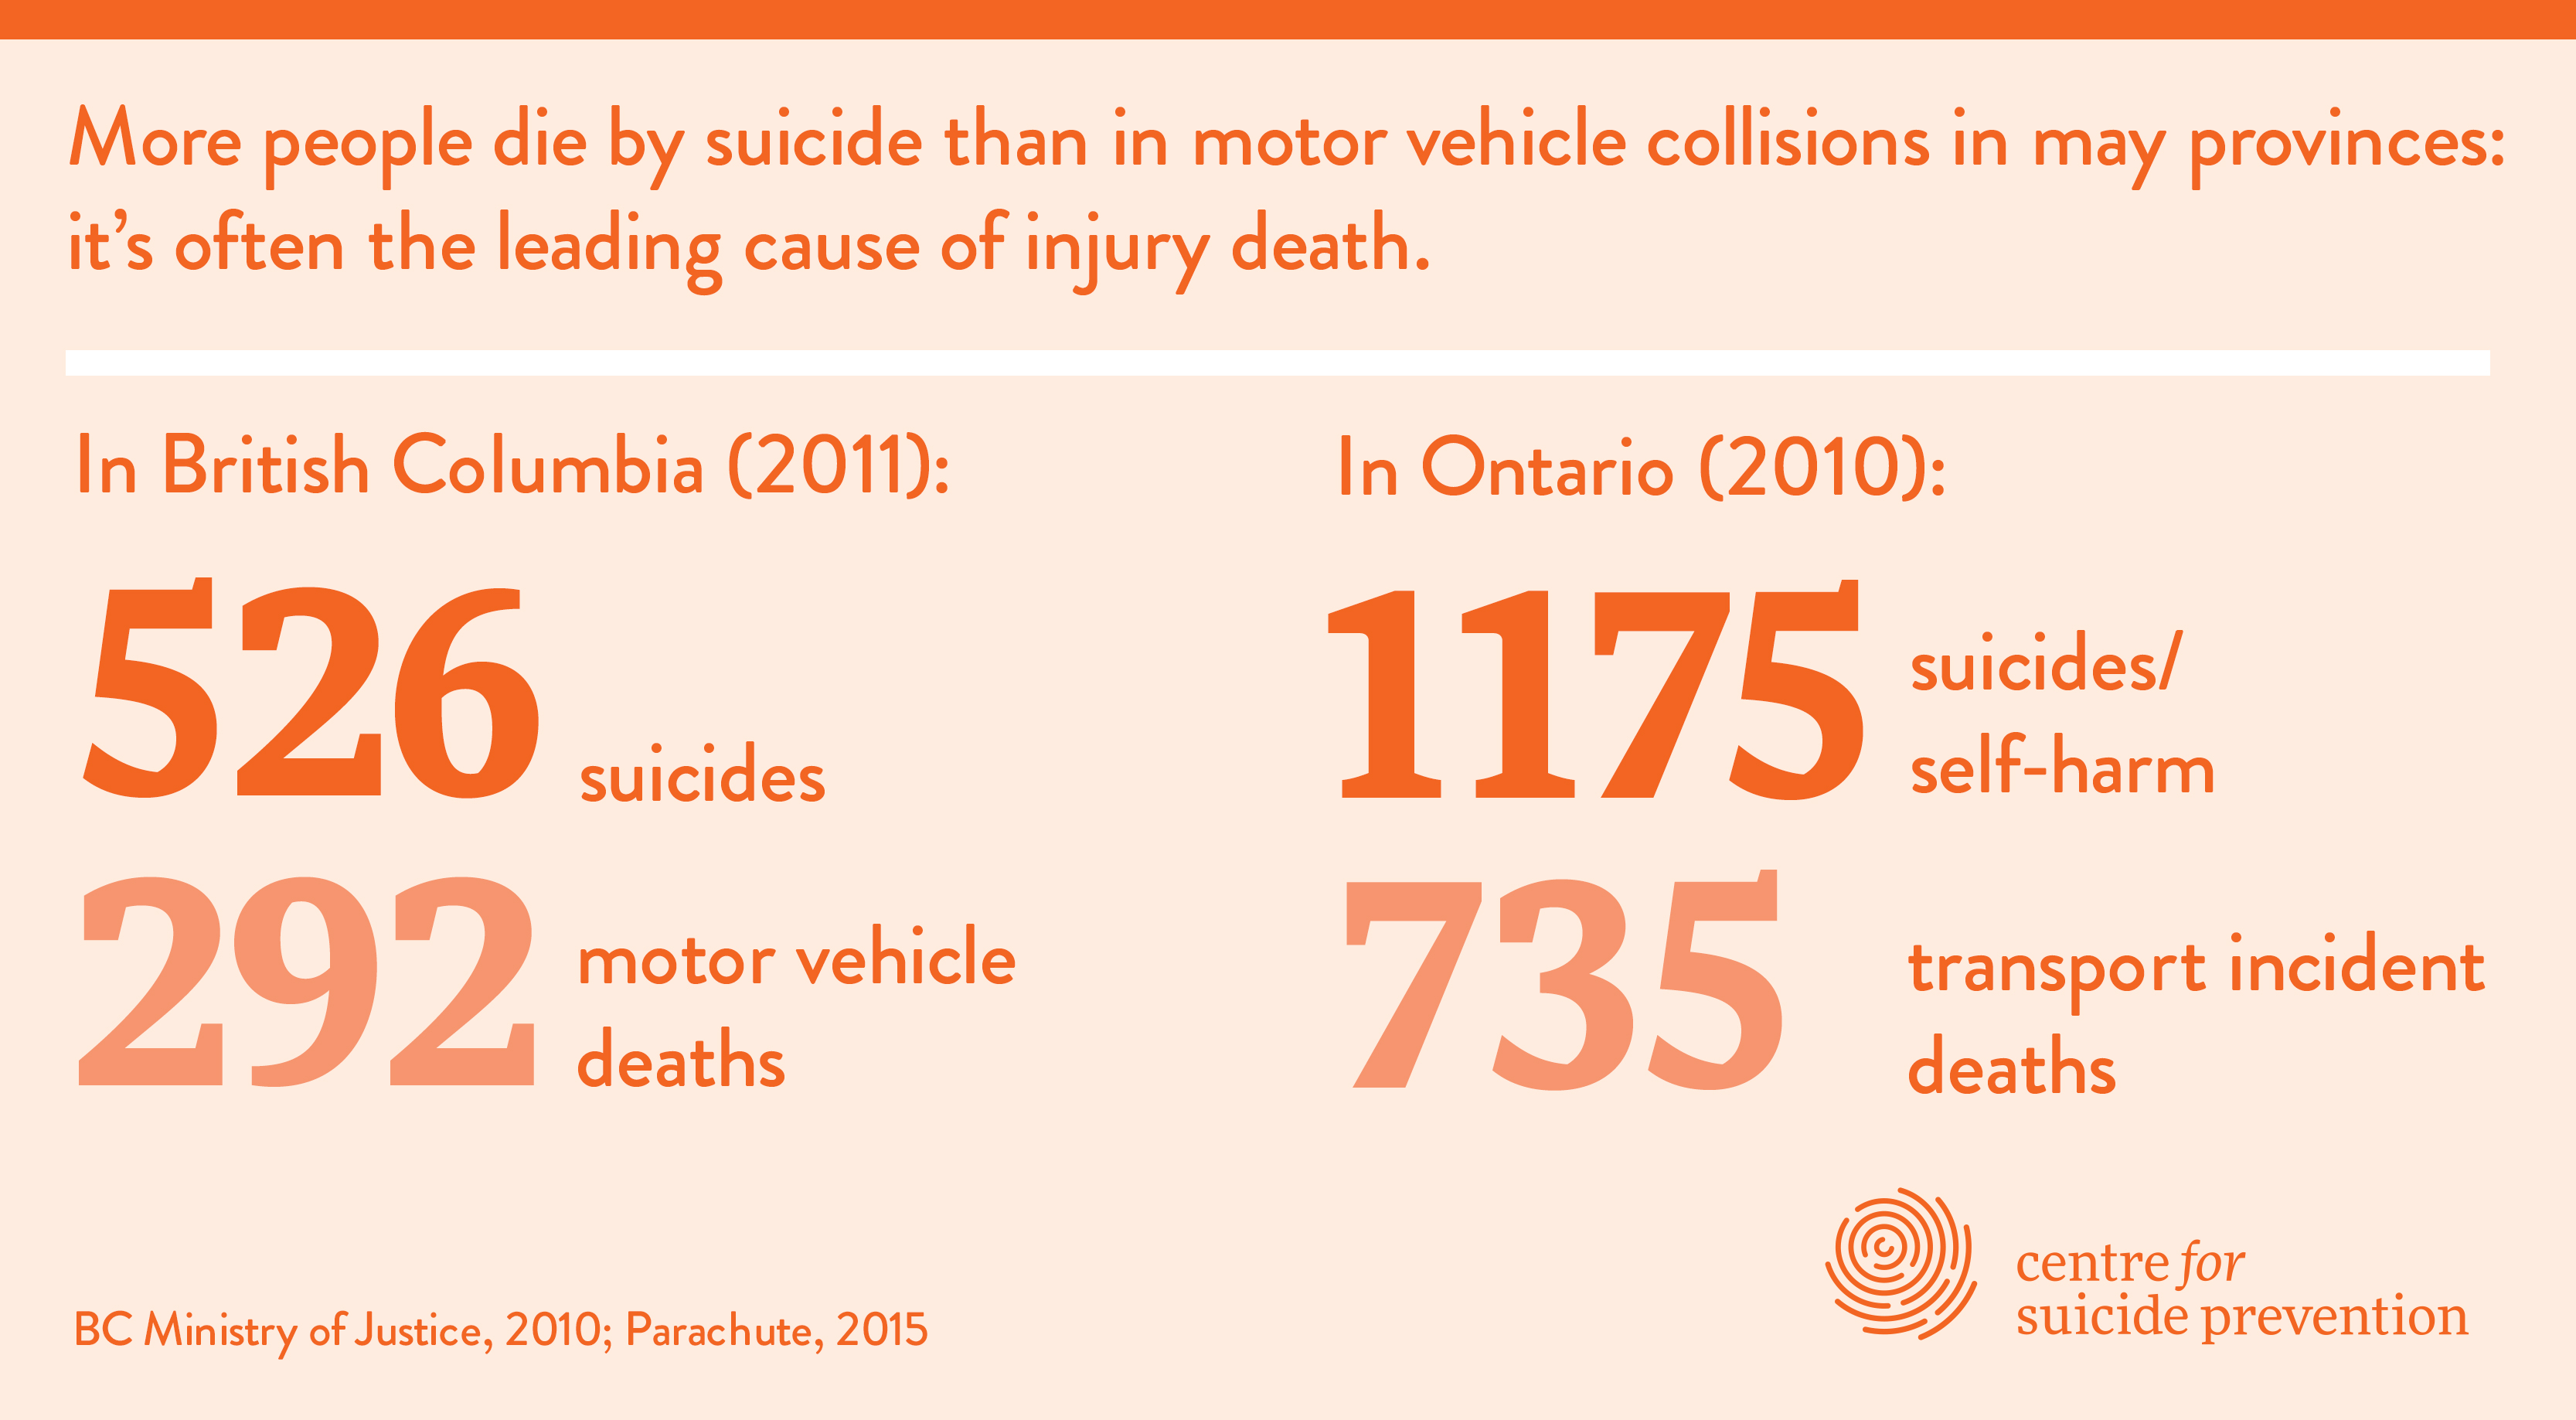 More people die by suicide than in motor vehicle collisions in many provinces: it's often the leading cause of injury death. In British Columbia (2011): 526 suicides and 292 motor vehicle deaths and in Ontario (2010):  1175 suicides/self-harm and 735 transport incident deaths (BC Ministry of Justice, 2010; Parachute, 2015)